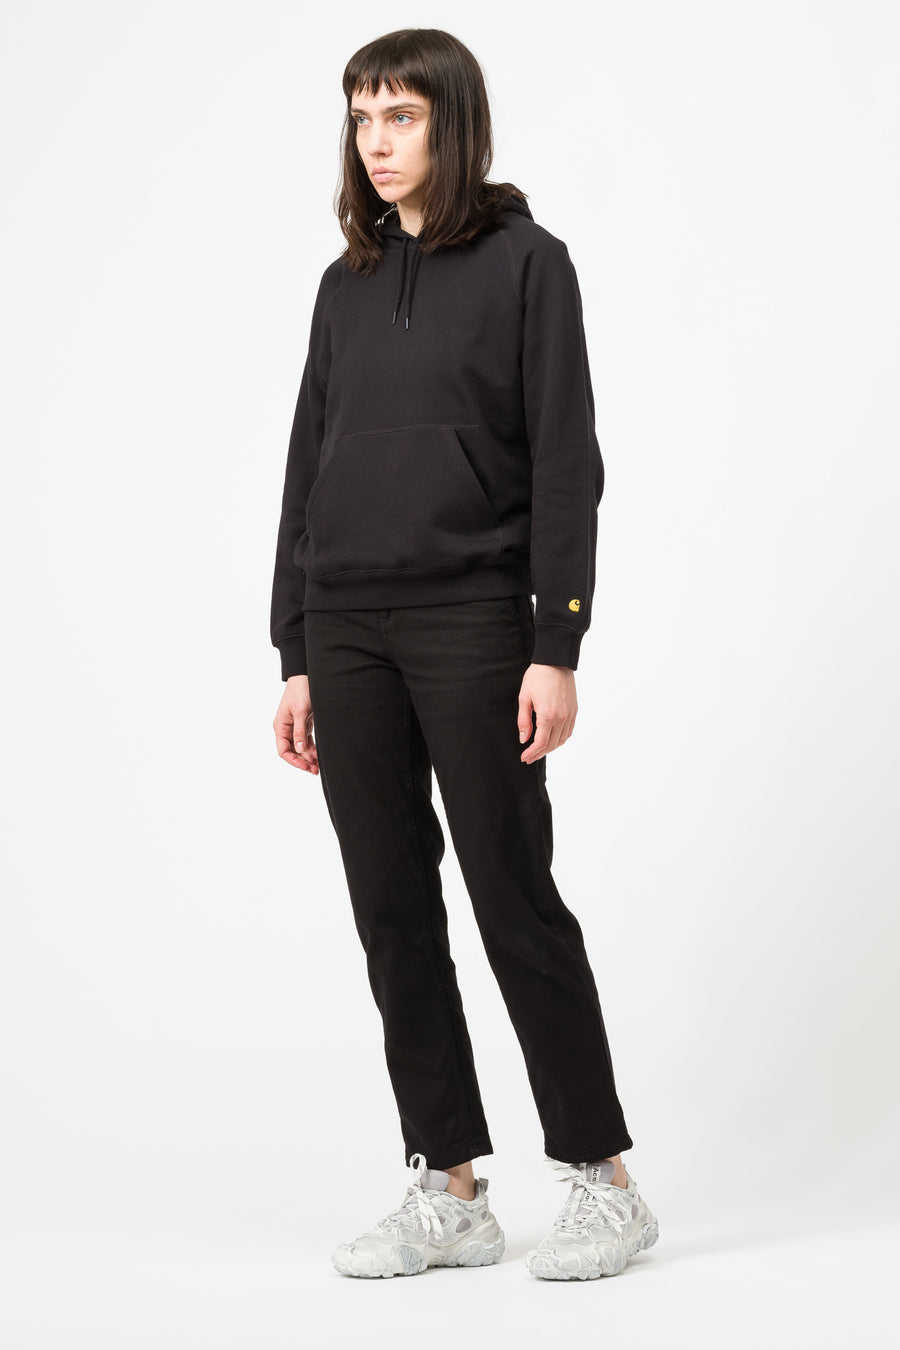 Carhartt WIP Hooded Chasy Sweatshirt in Black/Gold - Notre